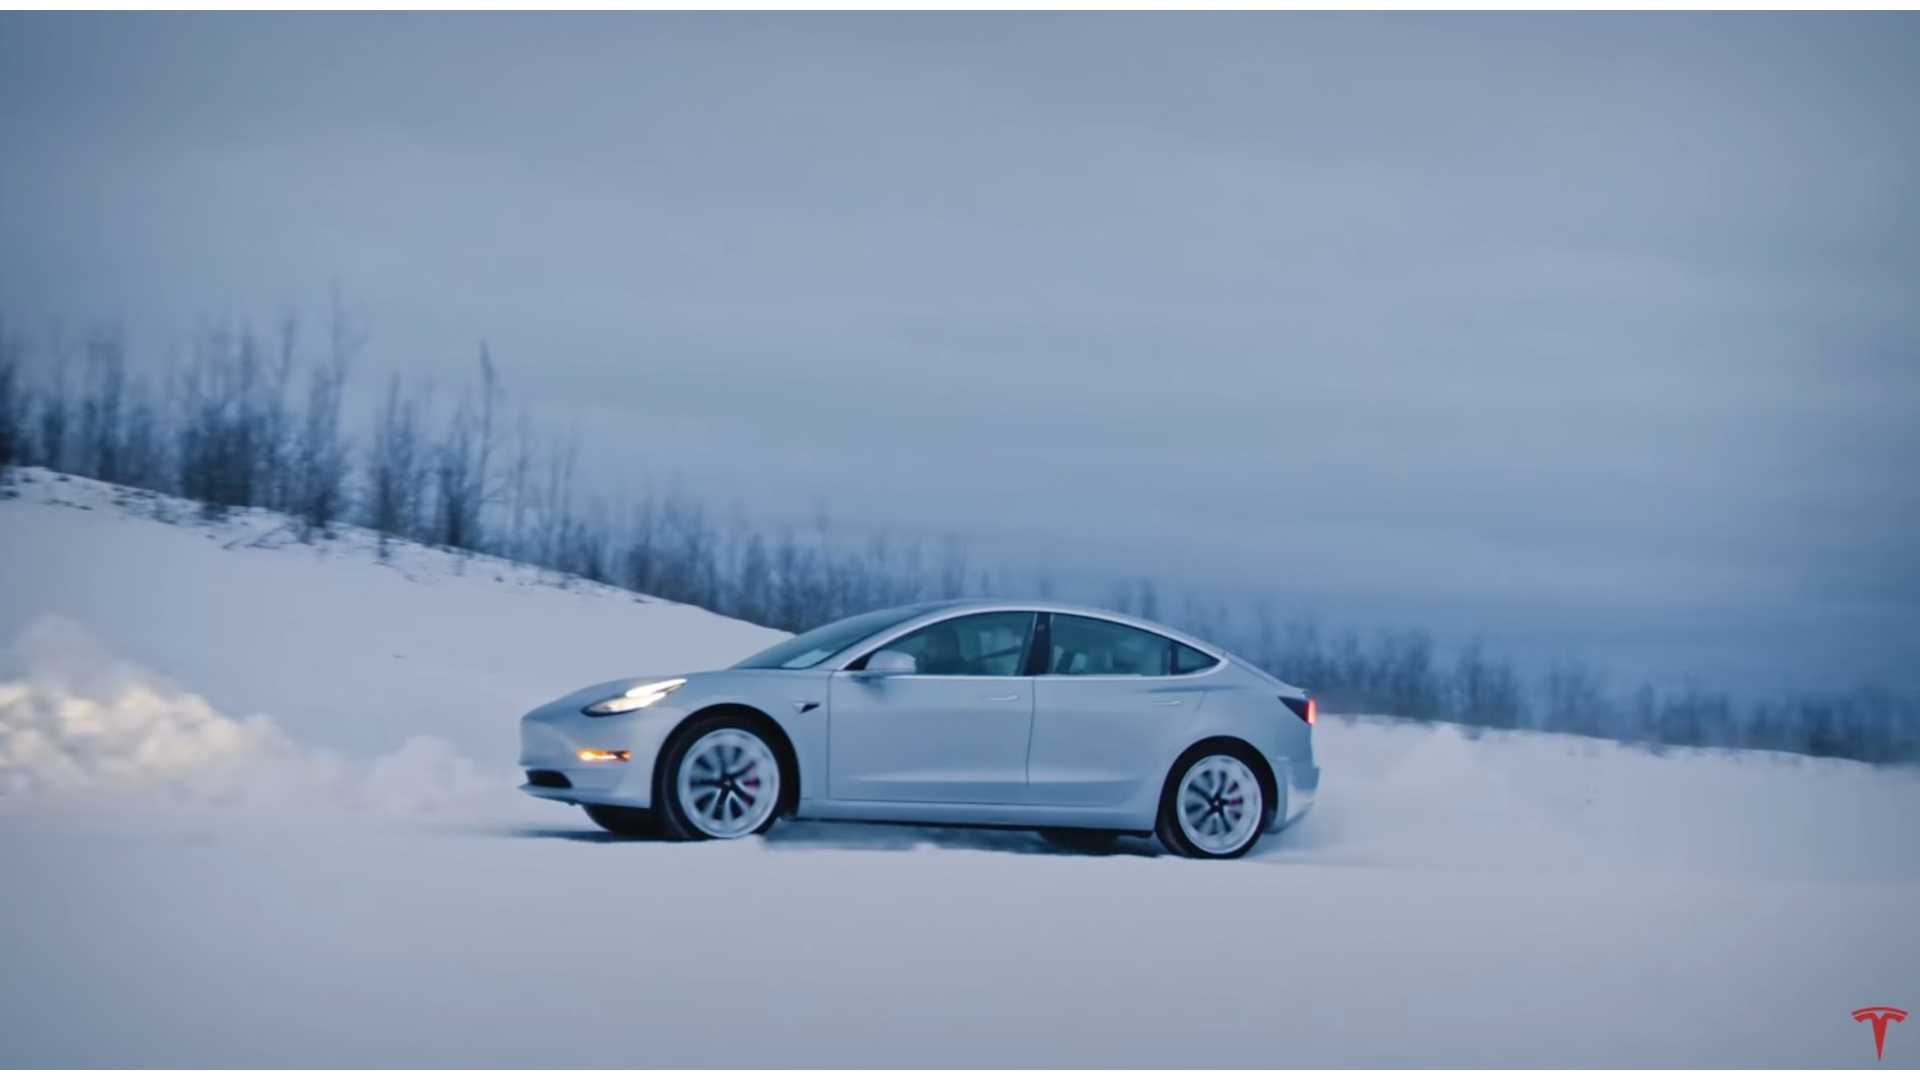 tesla model 3 performance navigational road rally at night in snow.